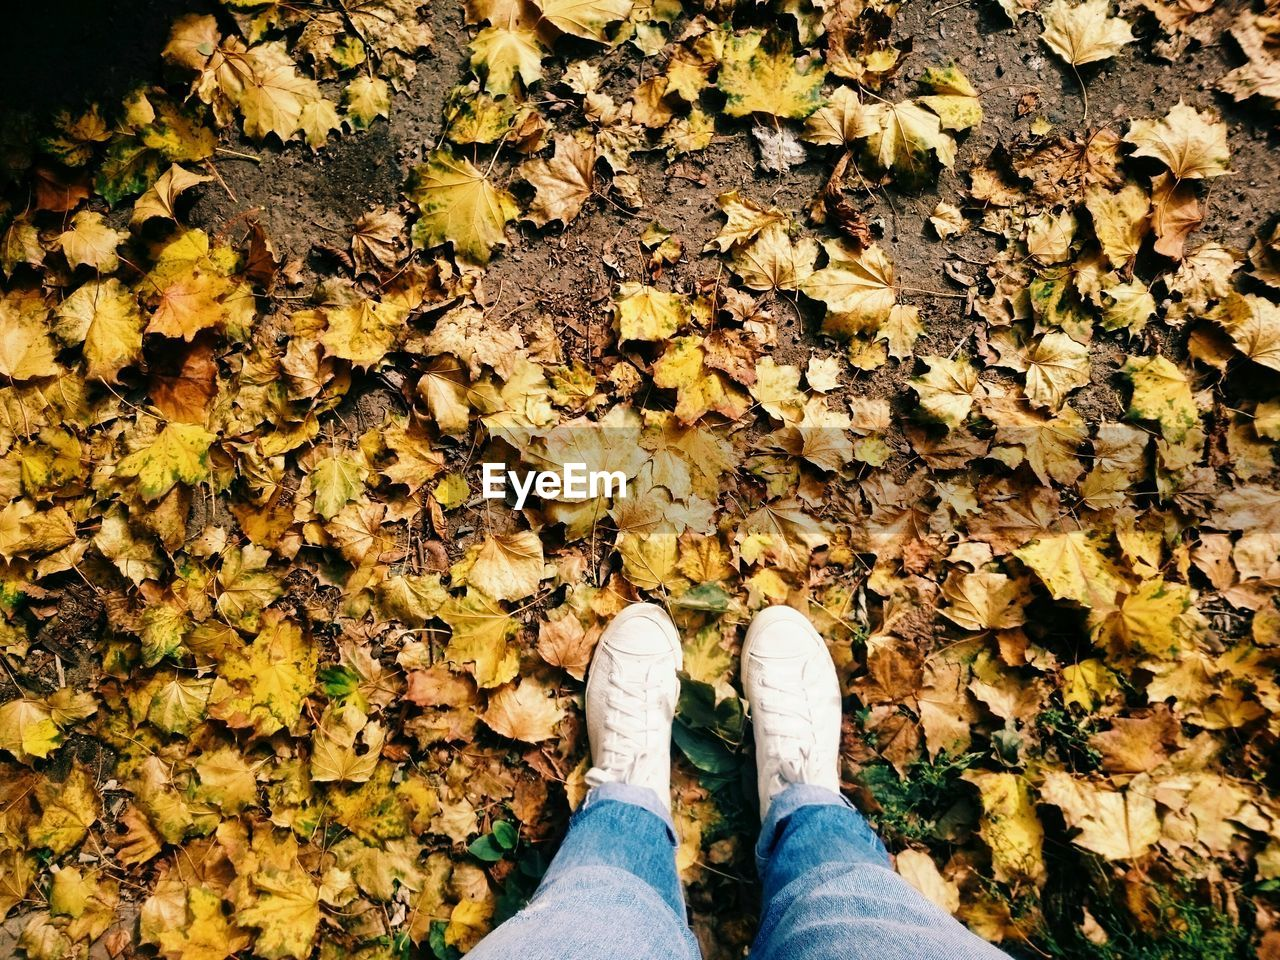 autumn, leaf, change, shoe, standing, human leg, low section, leaves, dry, real people, personal perspective, nature, fallen, one person, outdoors, day, high angle view, yellow, men, human body part, lifestyles, beauty in nature, leisure activity, canvas shoe, close-up, people